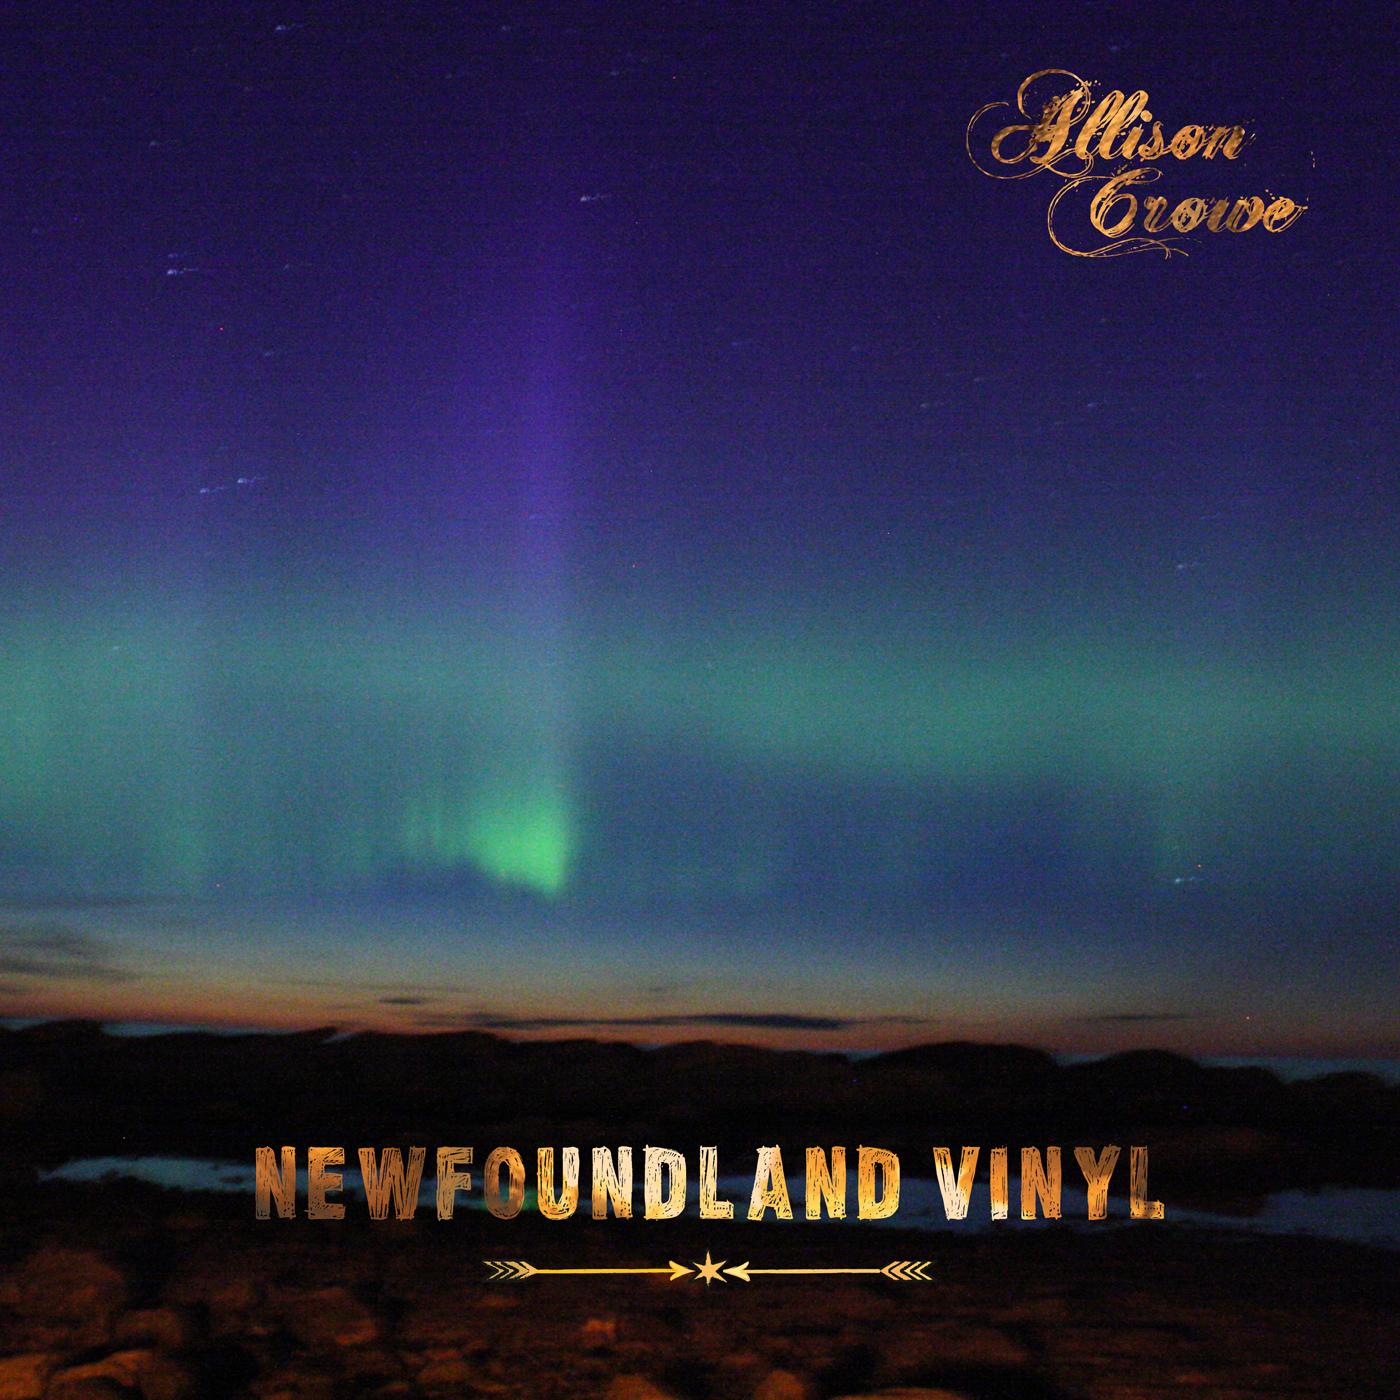 http://allisoncrowe.com/Allison-Crowe-Vinyl-Cover.jpg